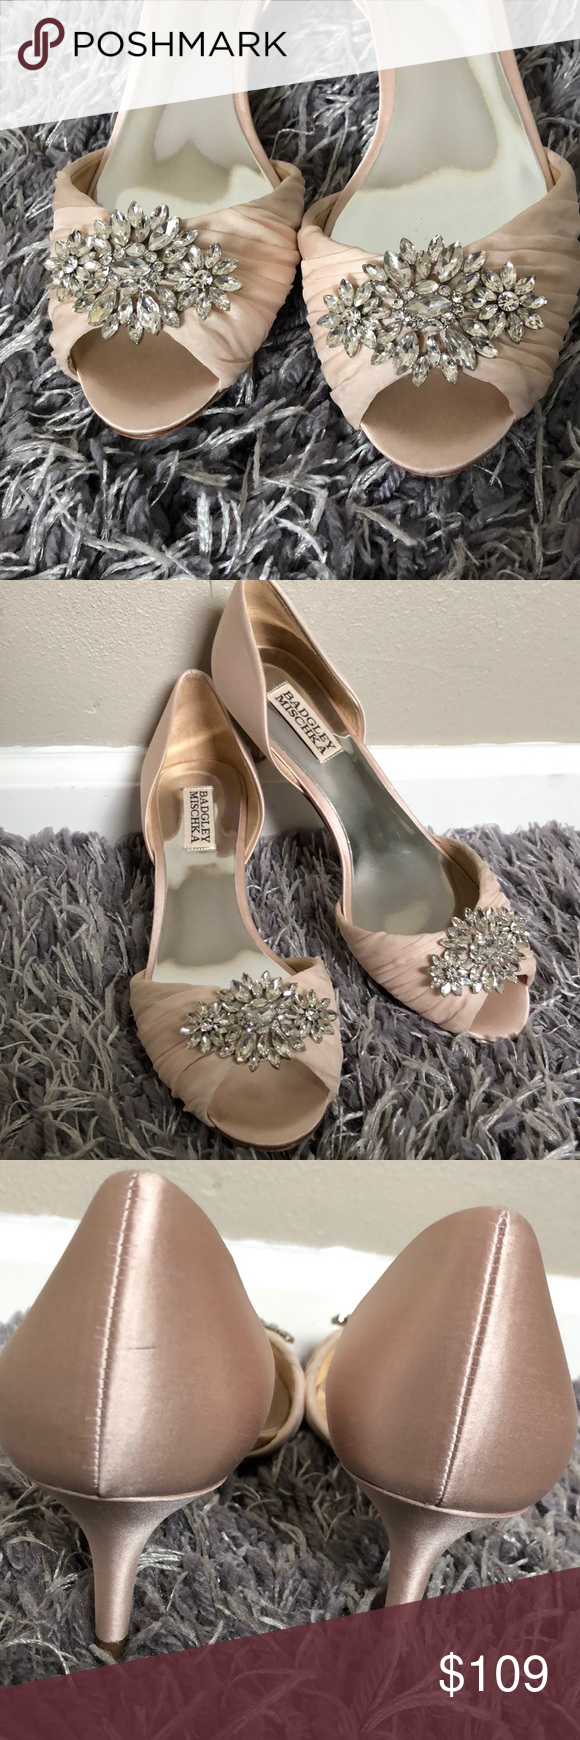 bd5324ffb7 Badgley Mischka Evening Shoe Sabine by Badgley Mischka. Glamorous satin  heel perfectly poised to add an elegant accent to your ensemble.